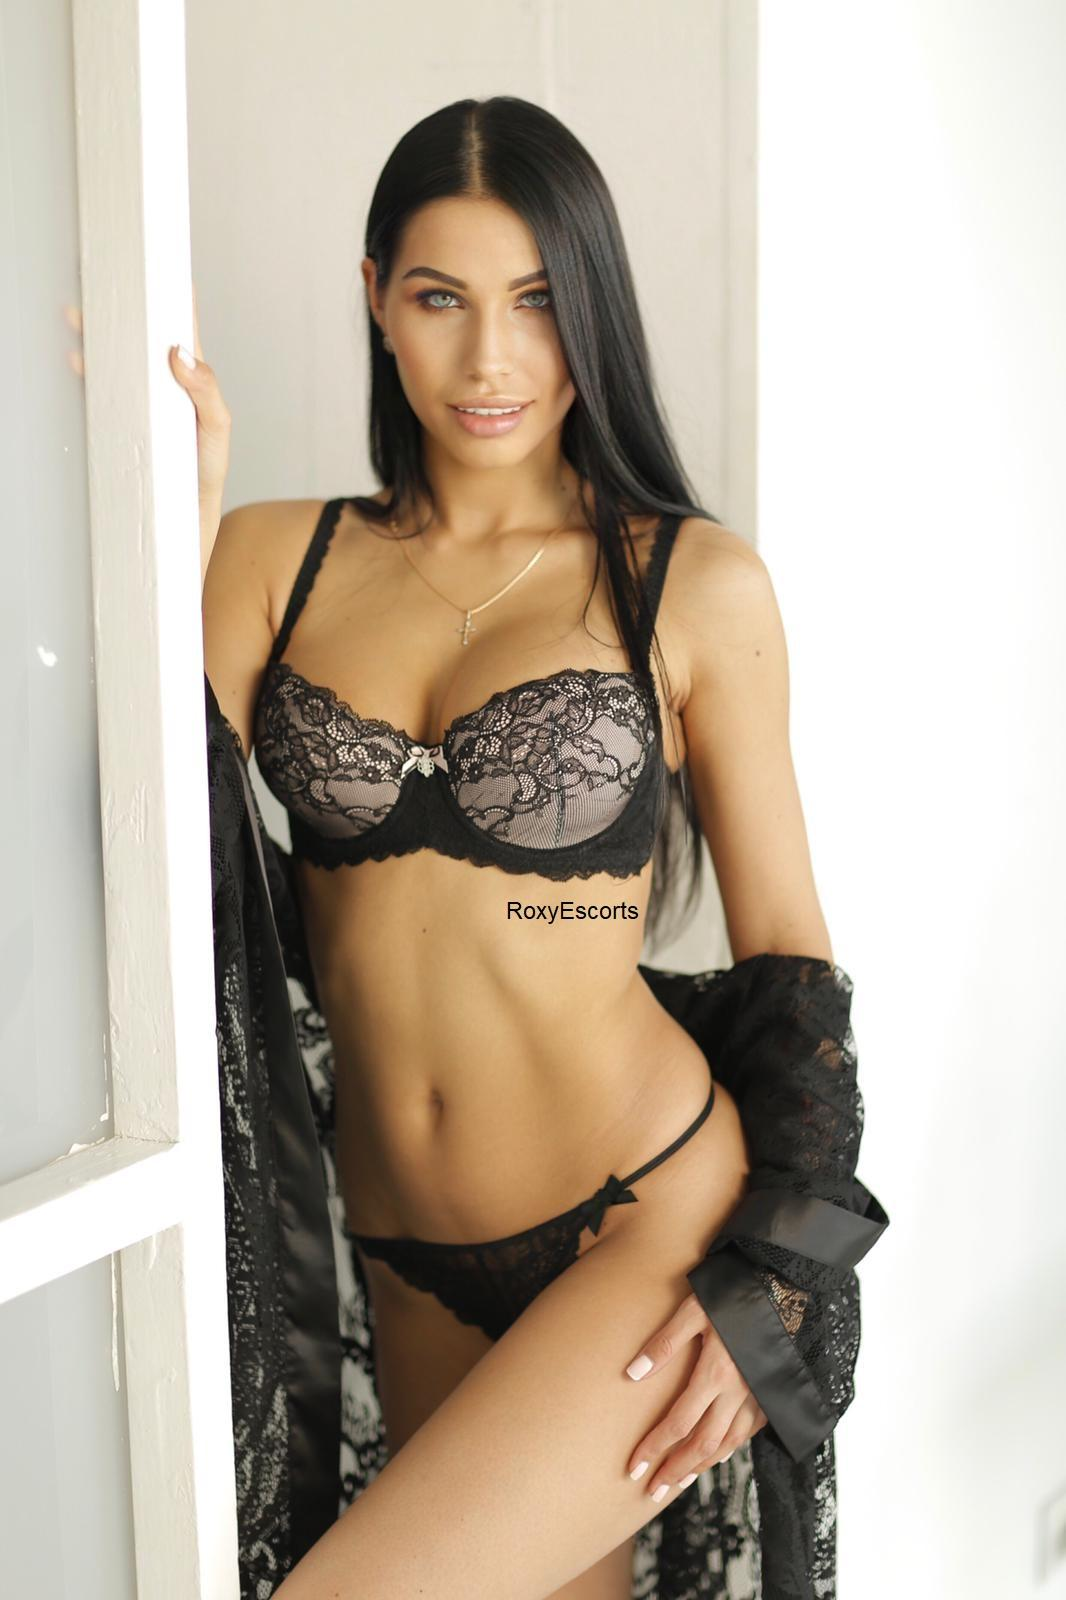 Marianne from Roxy Escorts